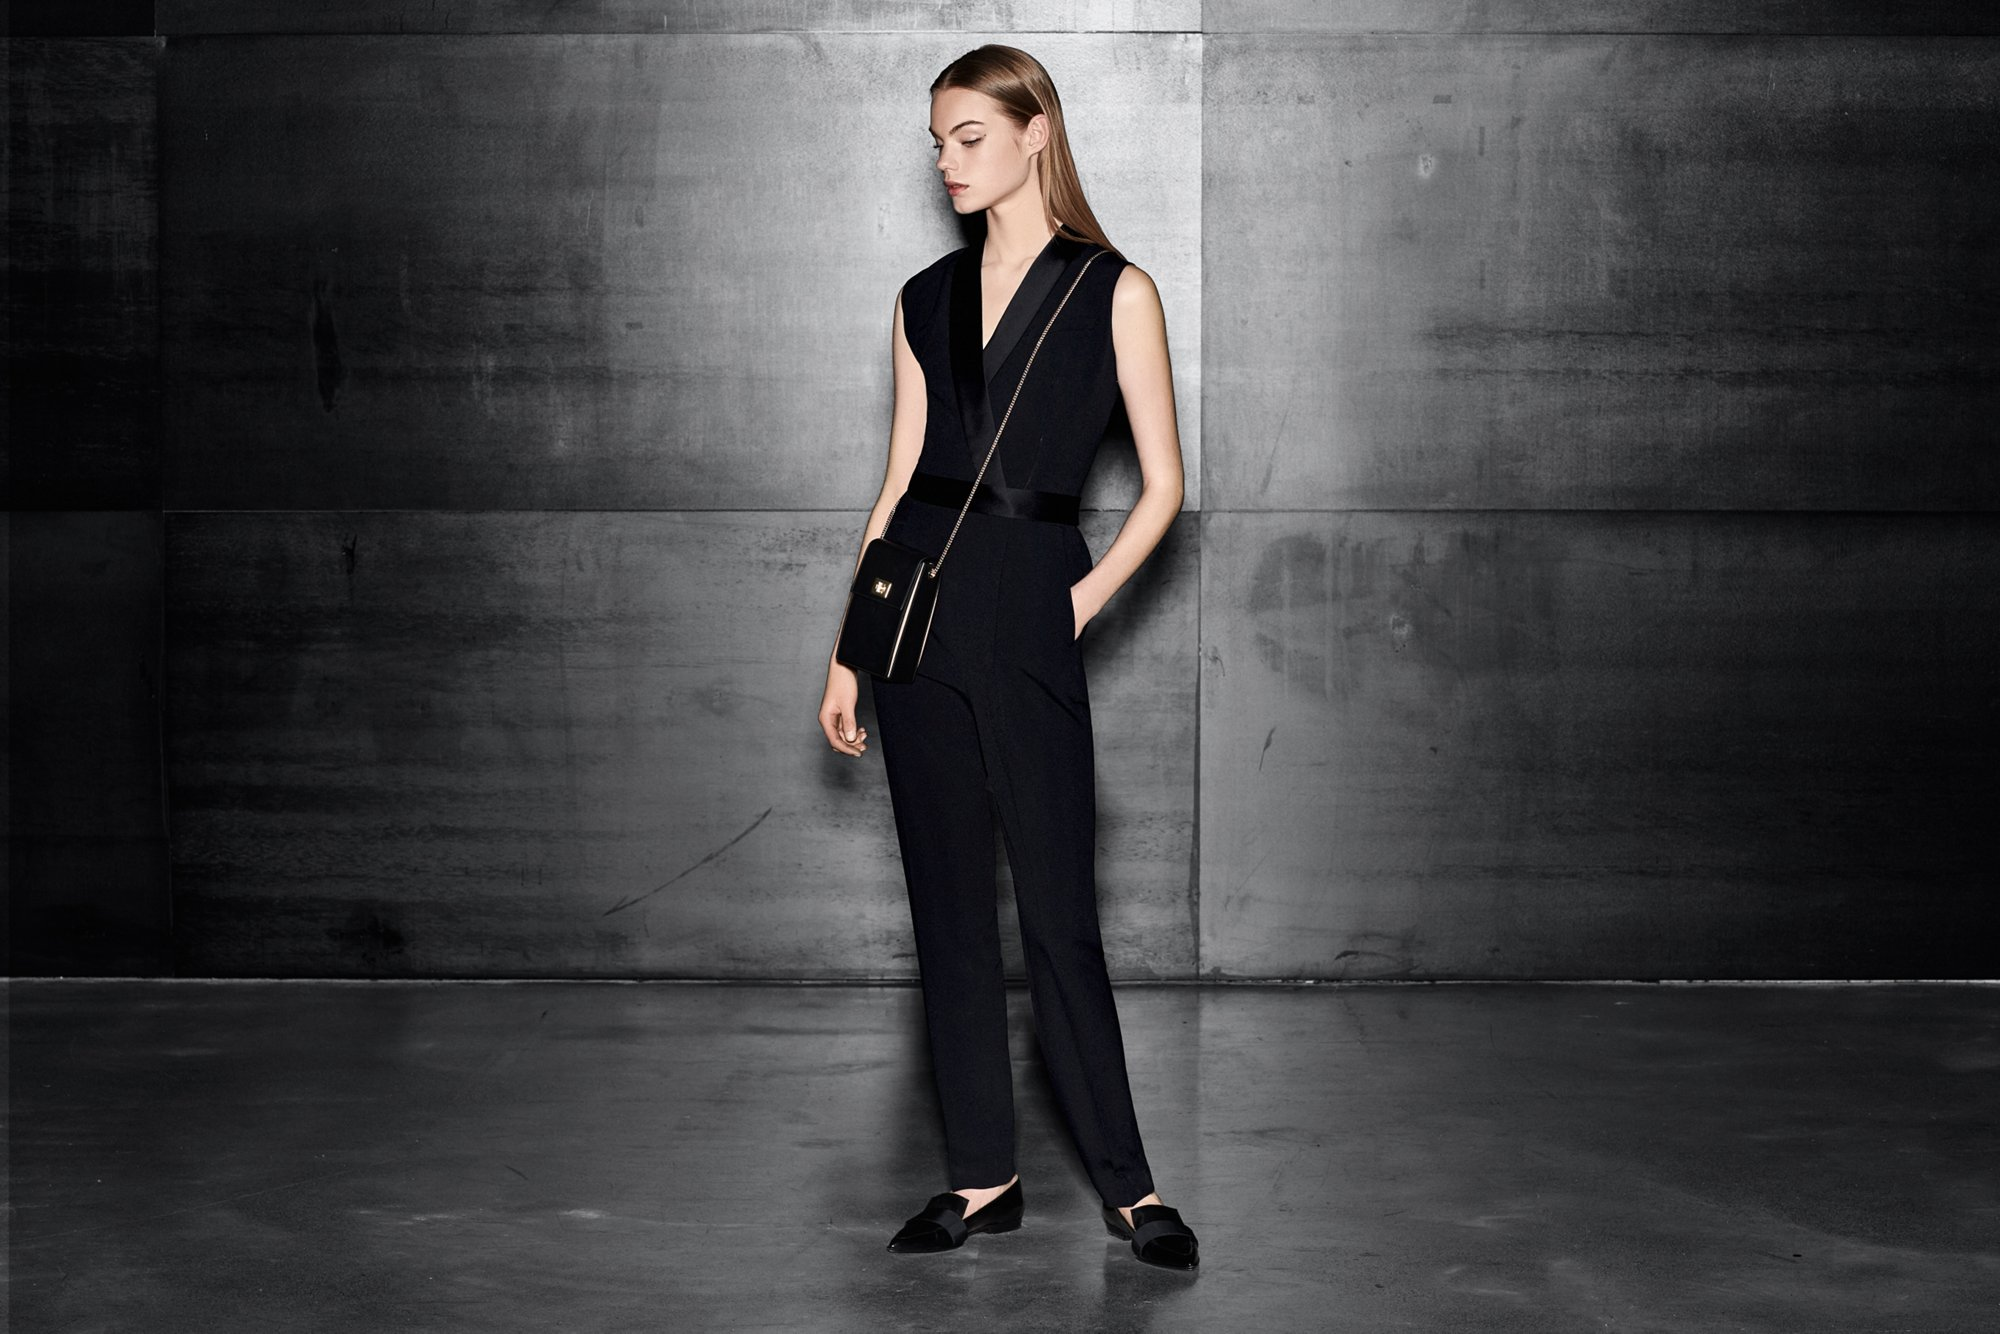 Black jumpsuit with a black bag and black shoes by BOSS